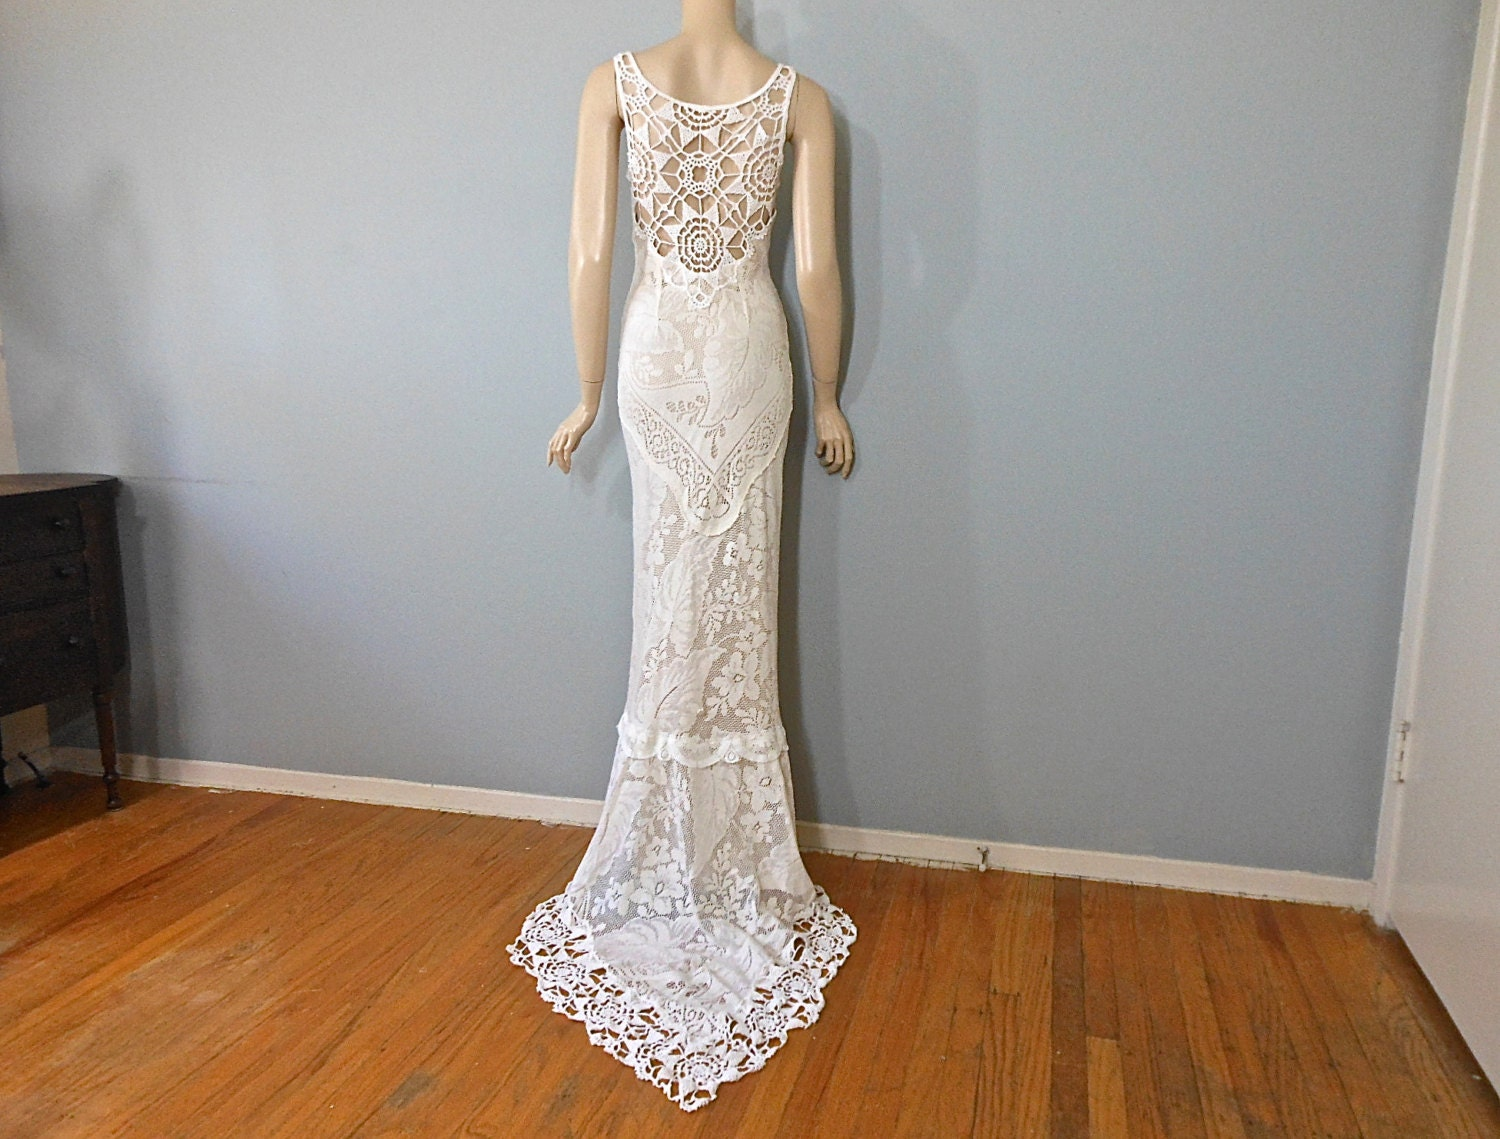 Handmade hippie wedding dress crochet boho wedding dress lace for Crochet lace wedding dress pattern